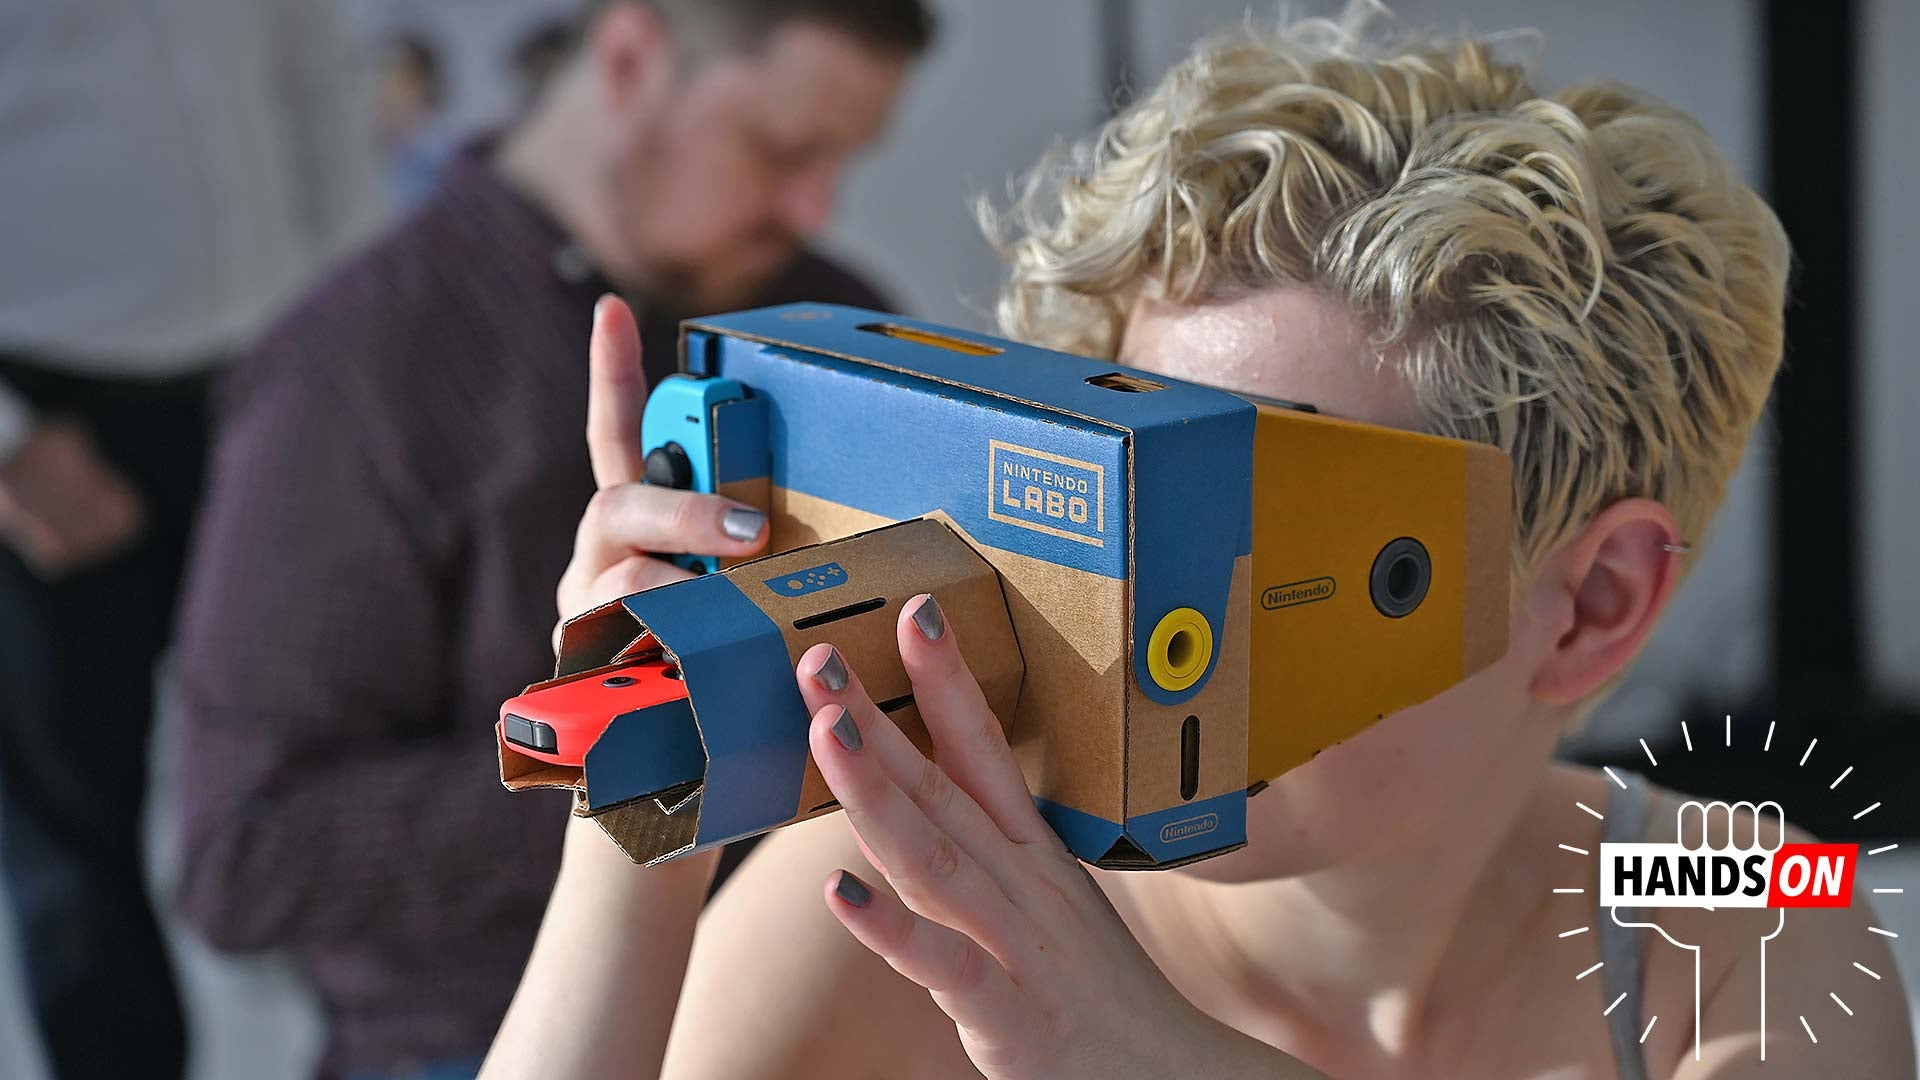 Nintendo's Labo VR Kit Is Its Wildest Cardboard Adventure Yet